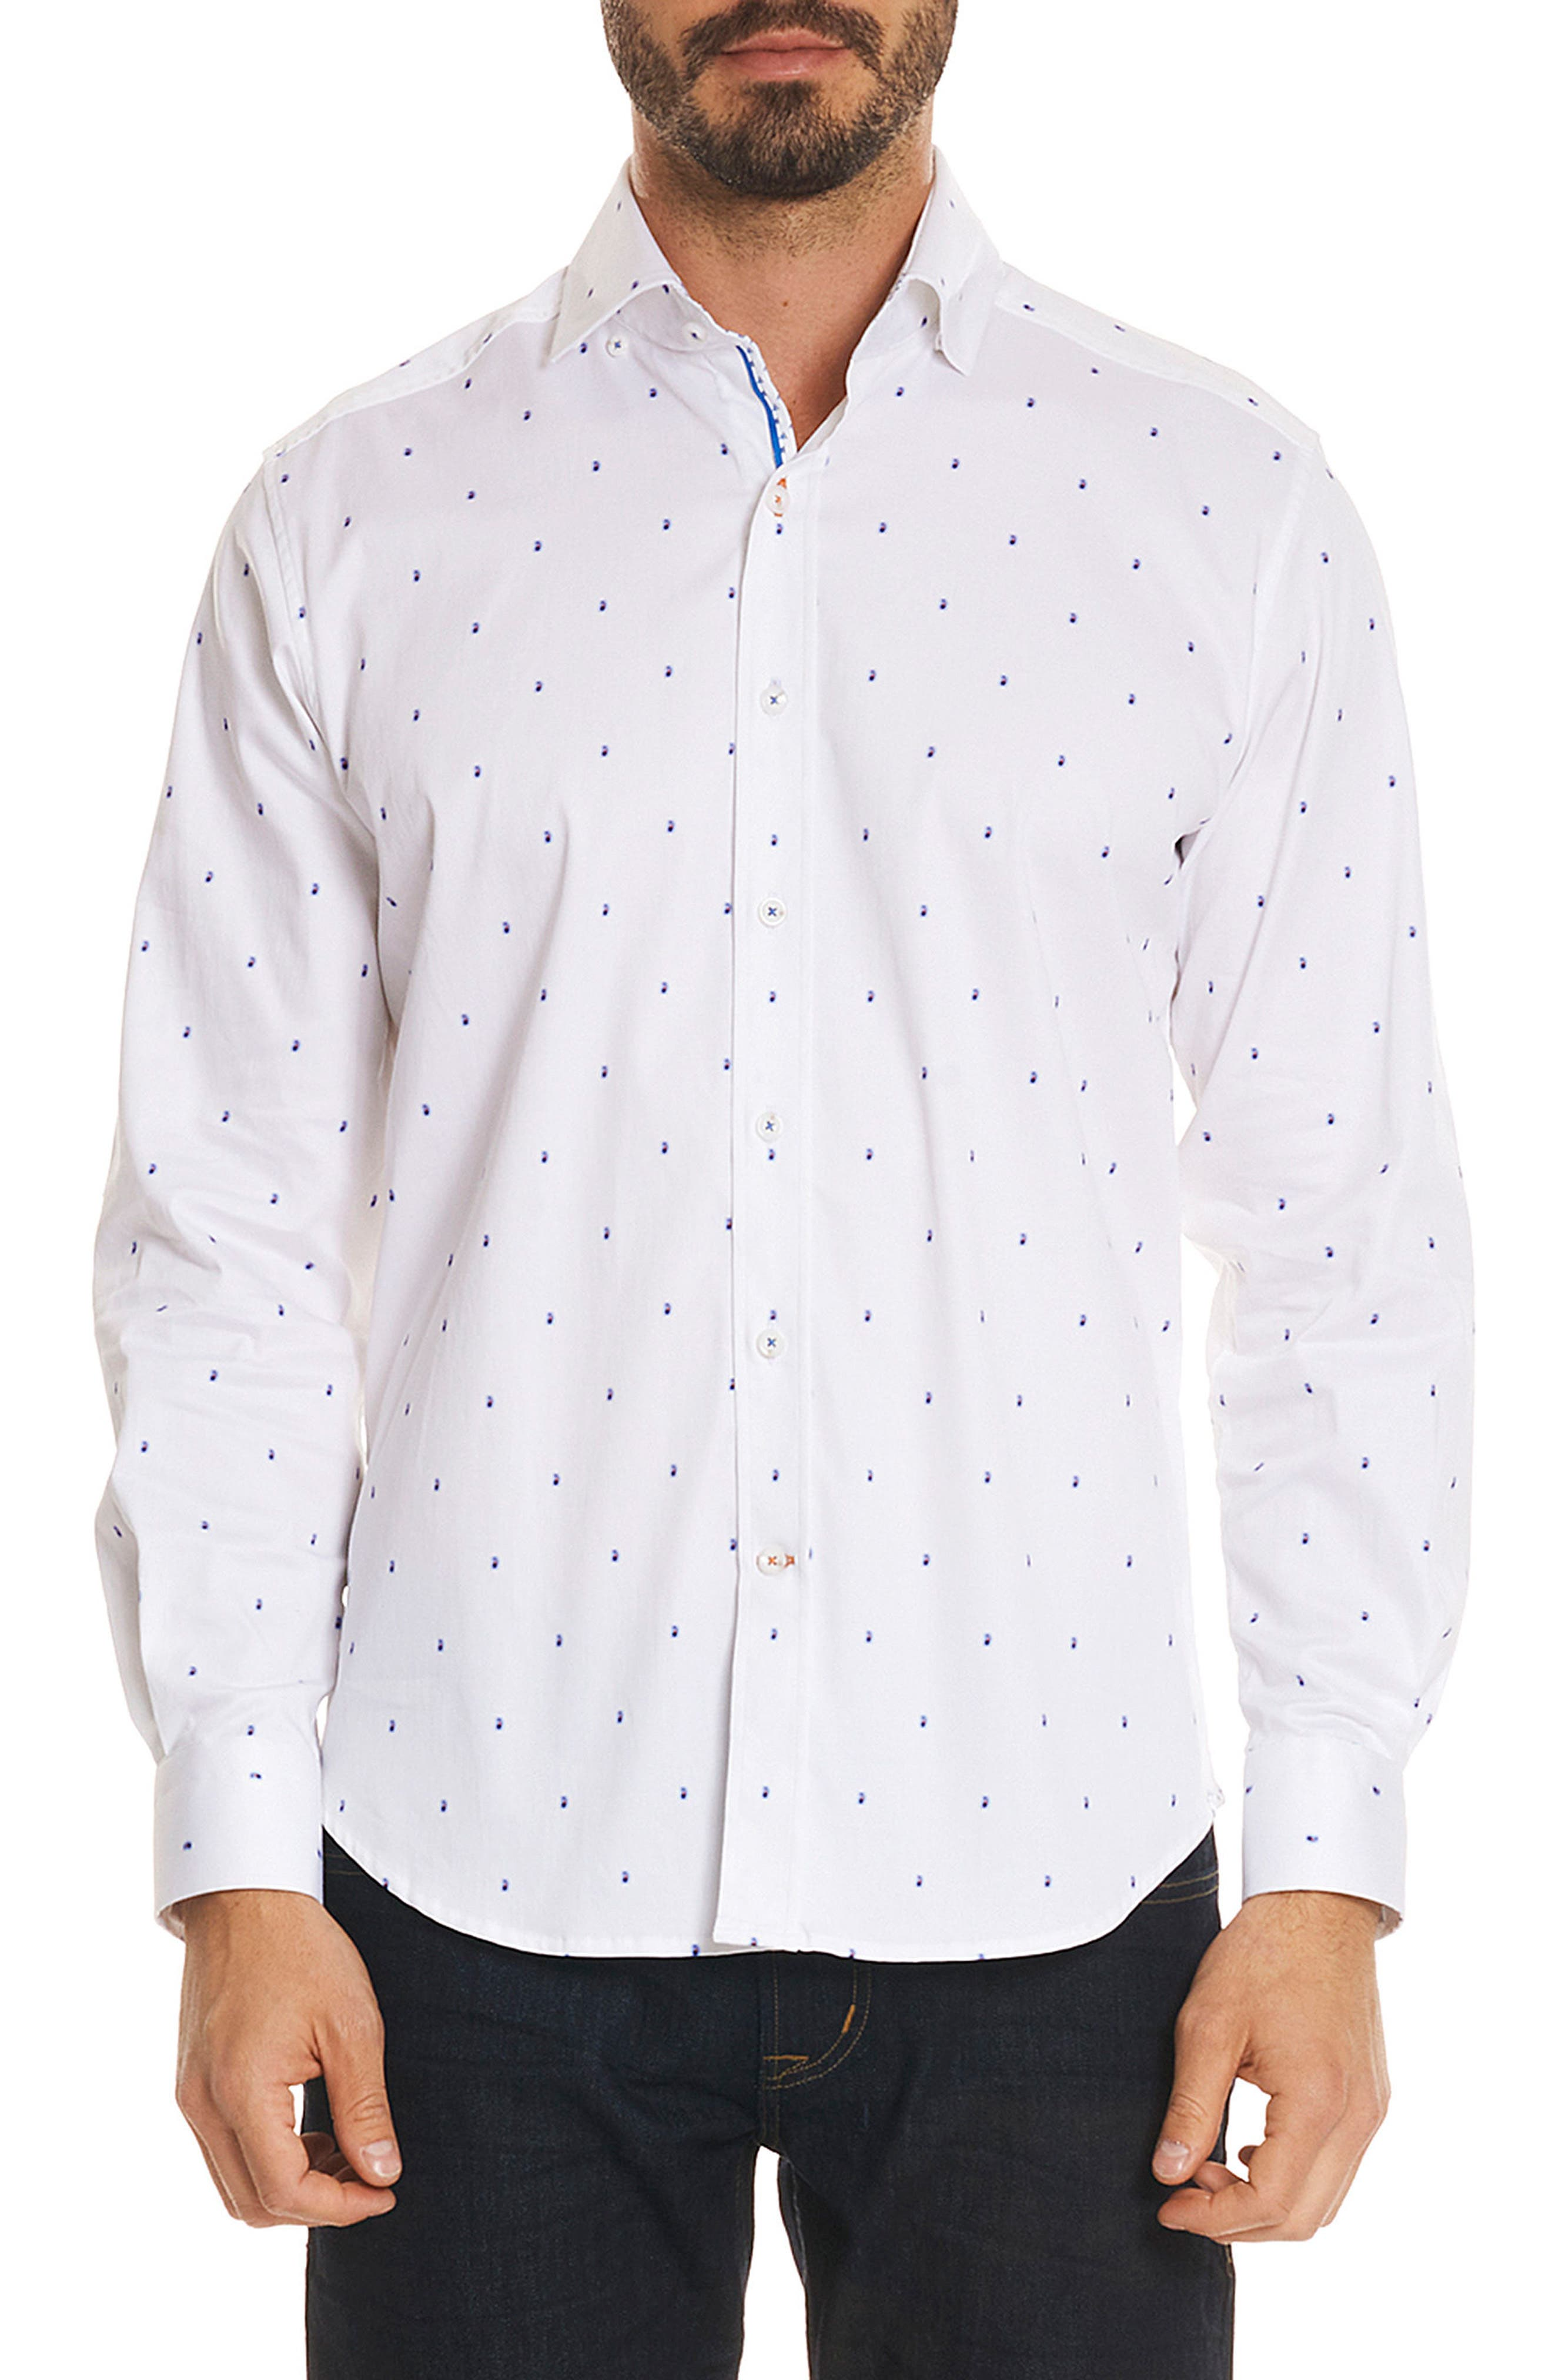 Mack Tailored Fit Sport Shirt,                         Main,                         color, 100